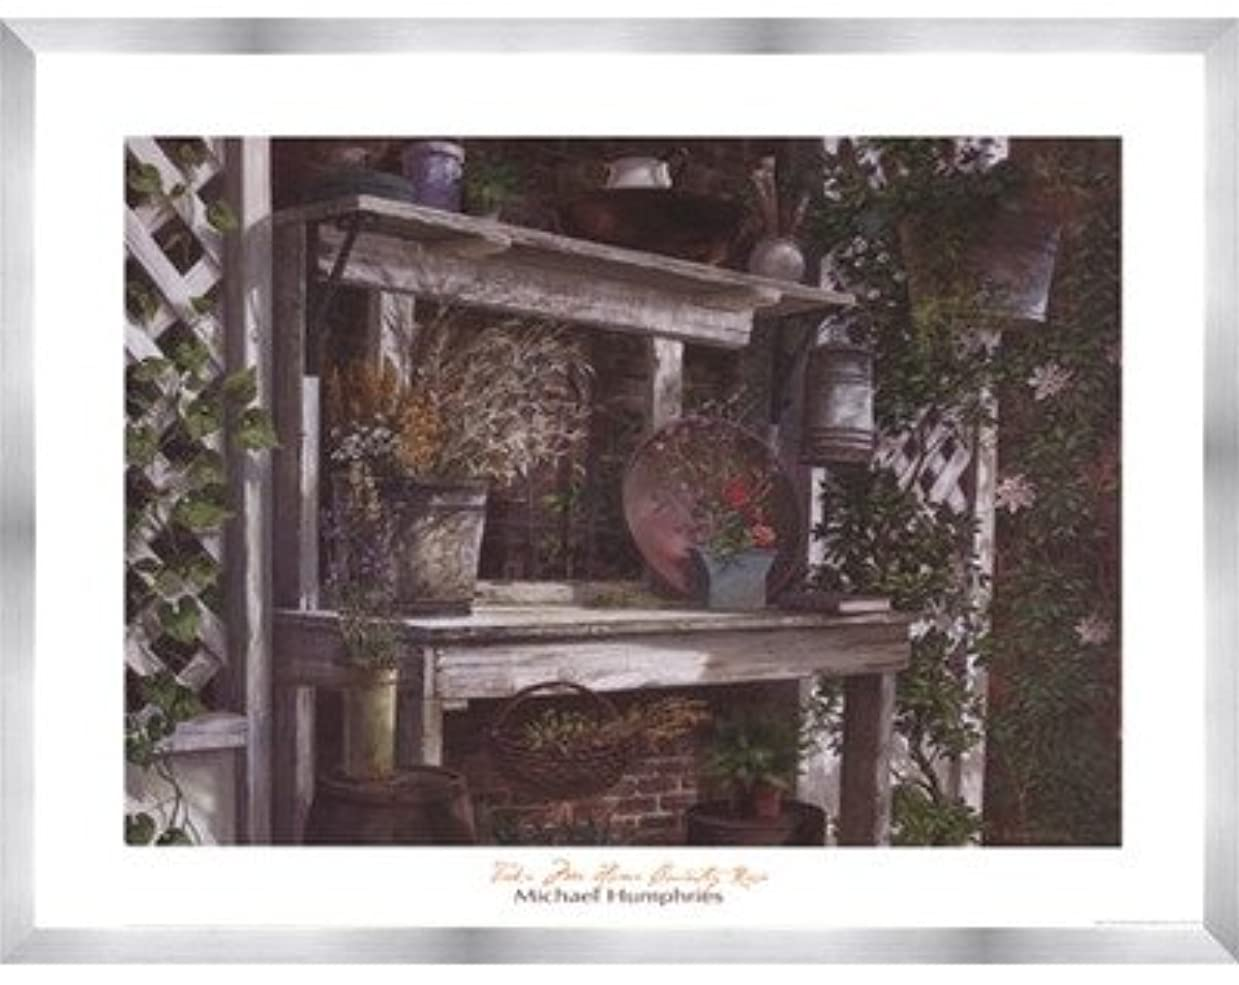 Take Me Home Country Rose by Michael Humphries – 28 x 22インチ – アートプリントポスター LE_115544-F9935-28x22